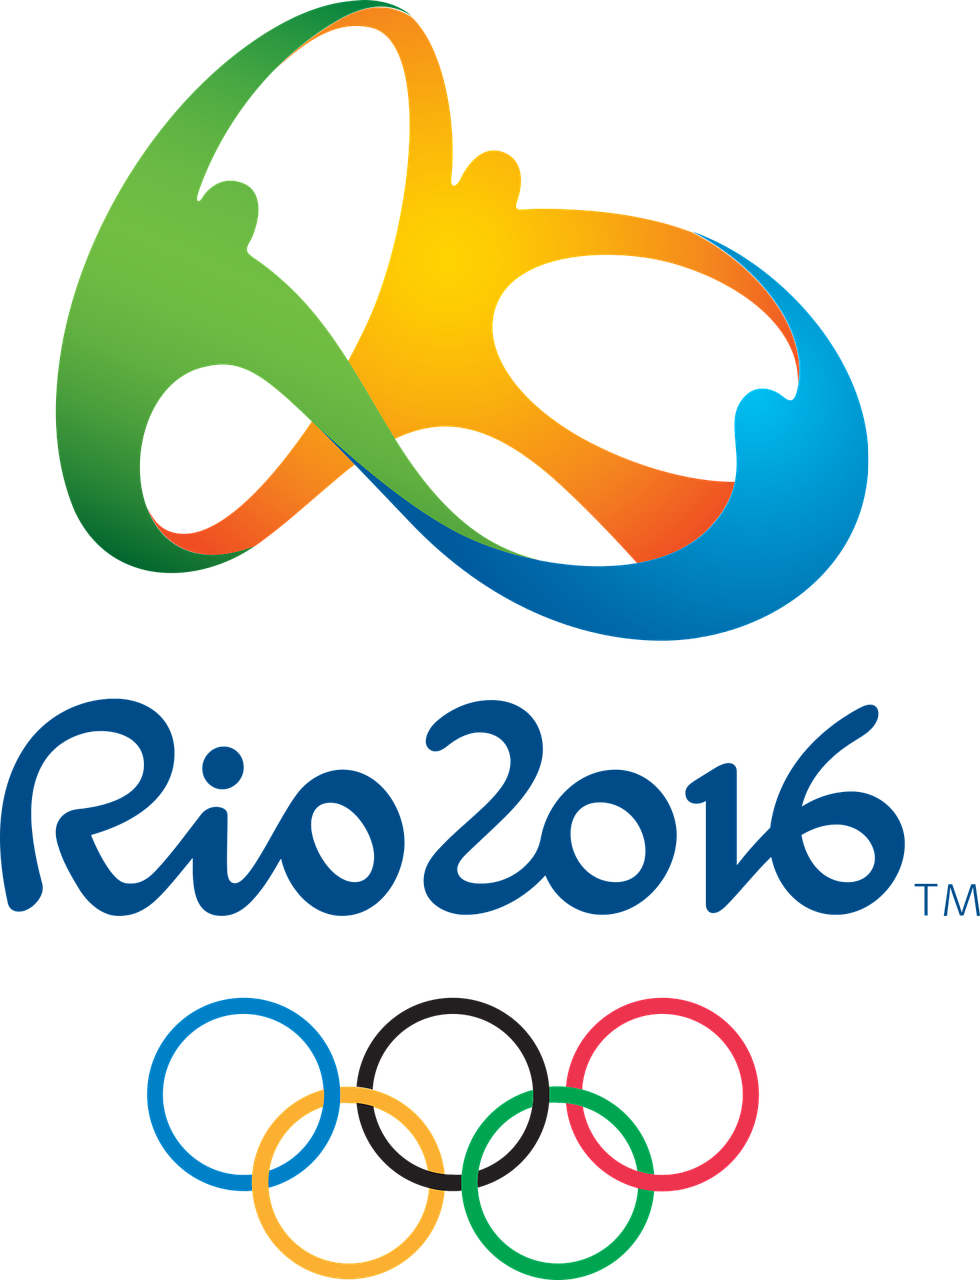 Rio 2016 Olympics and Potential Trade Mark Infringement